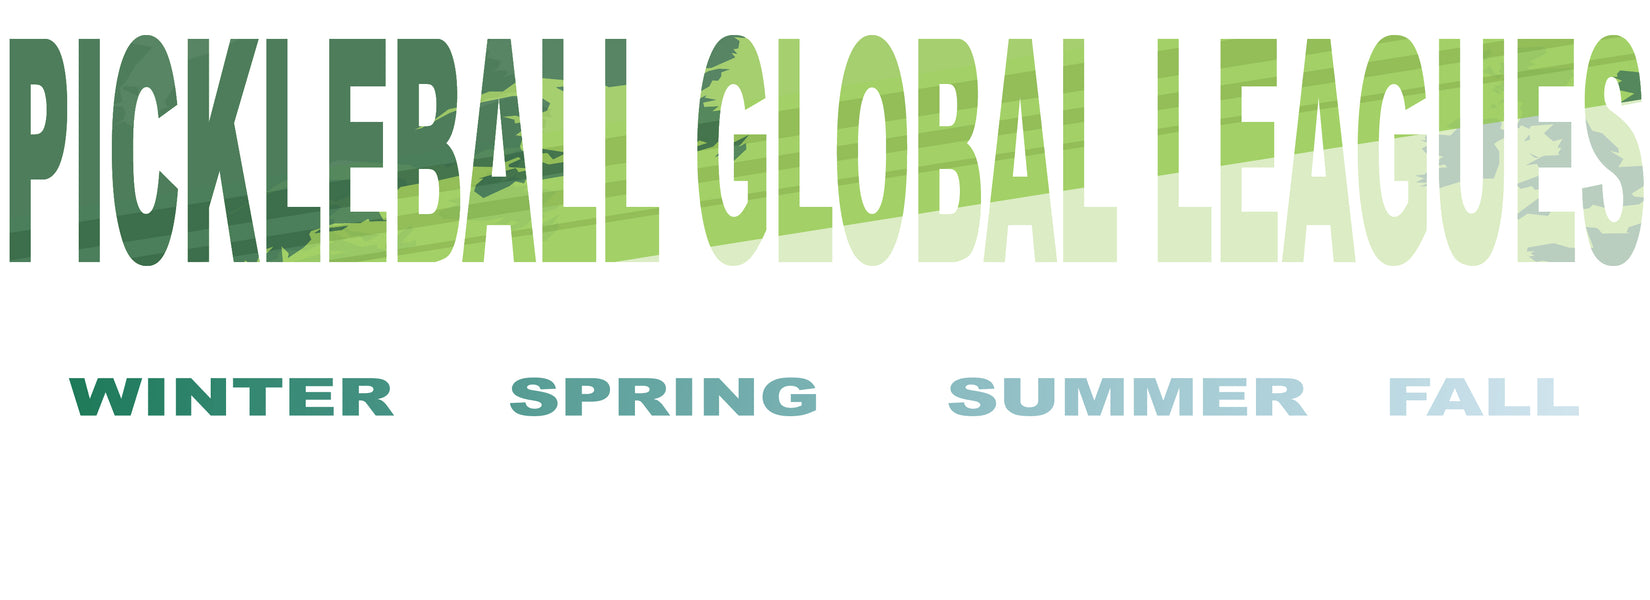 Pickleball Global Leagues - Spring